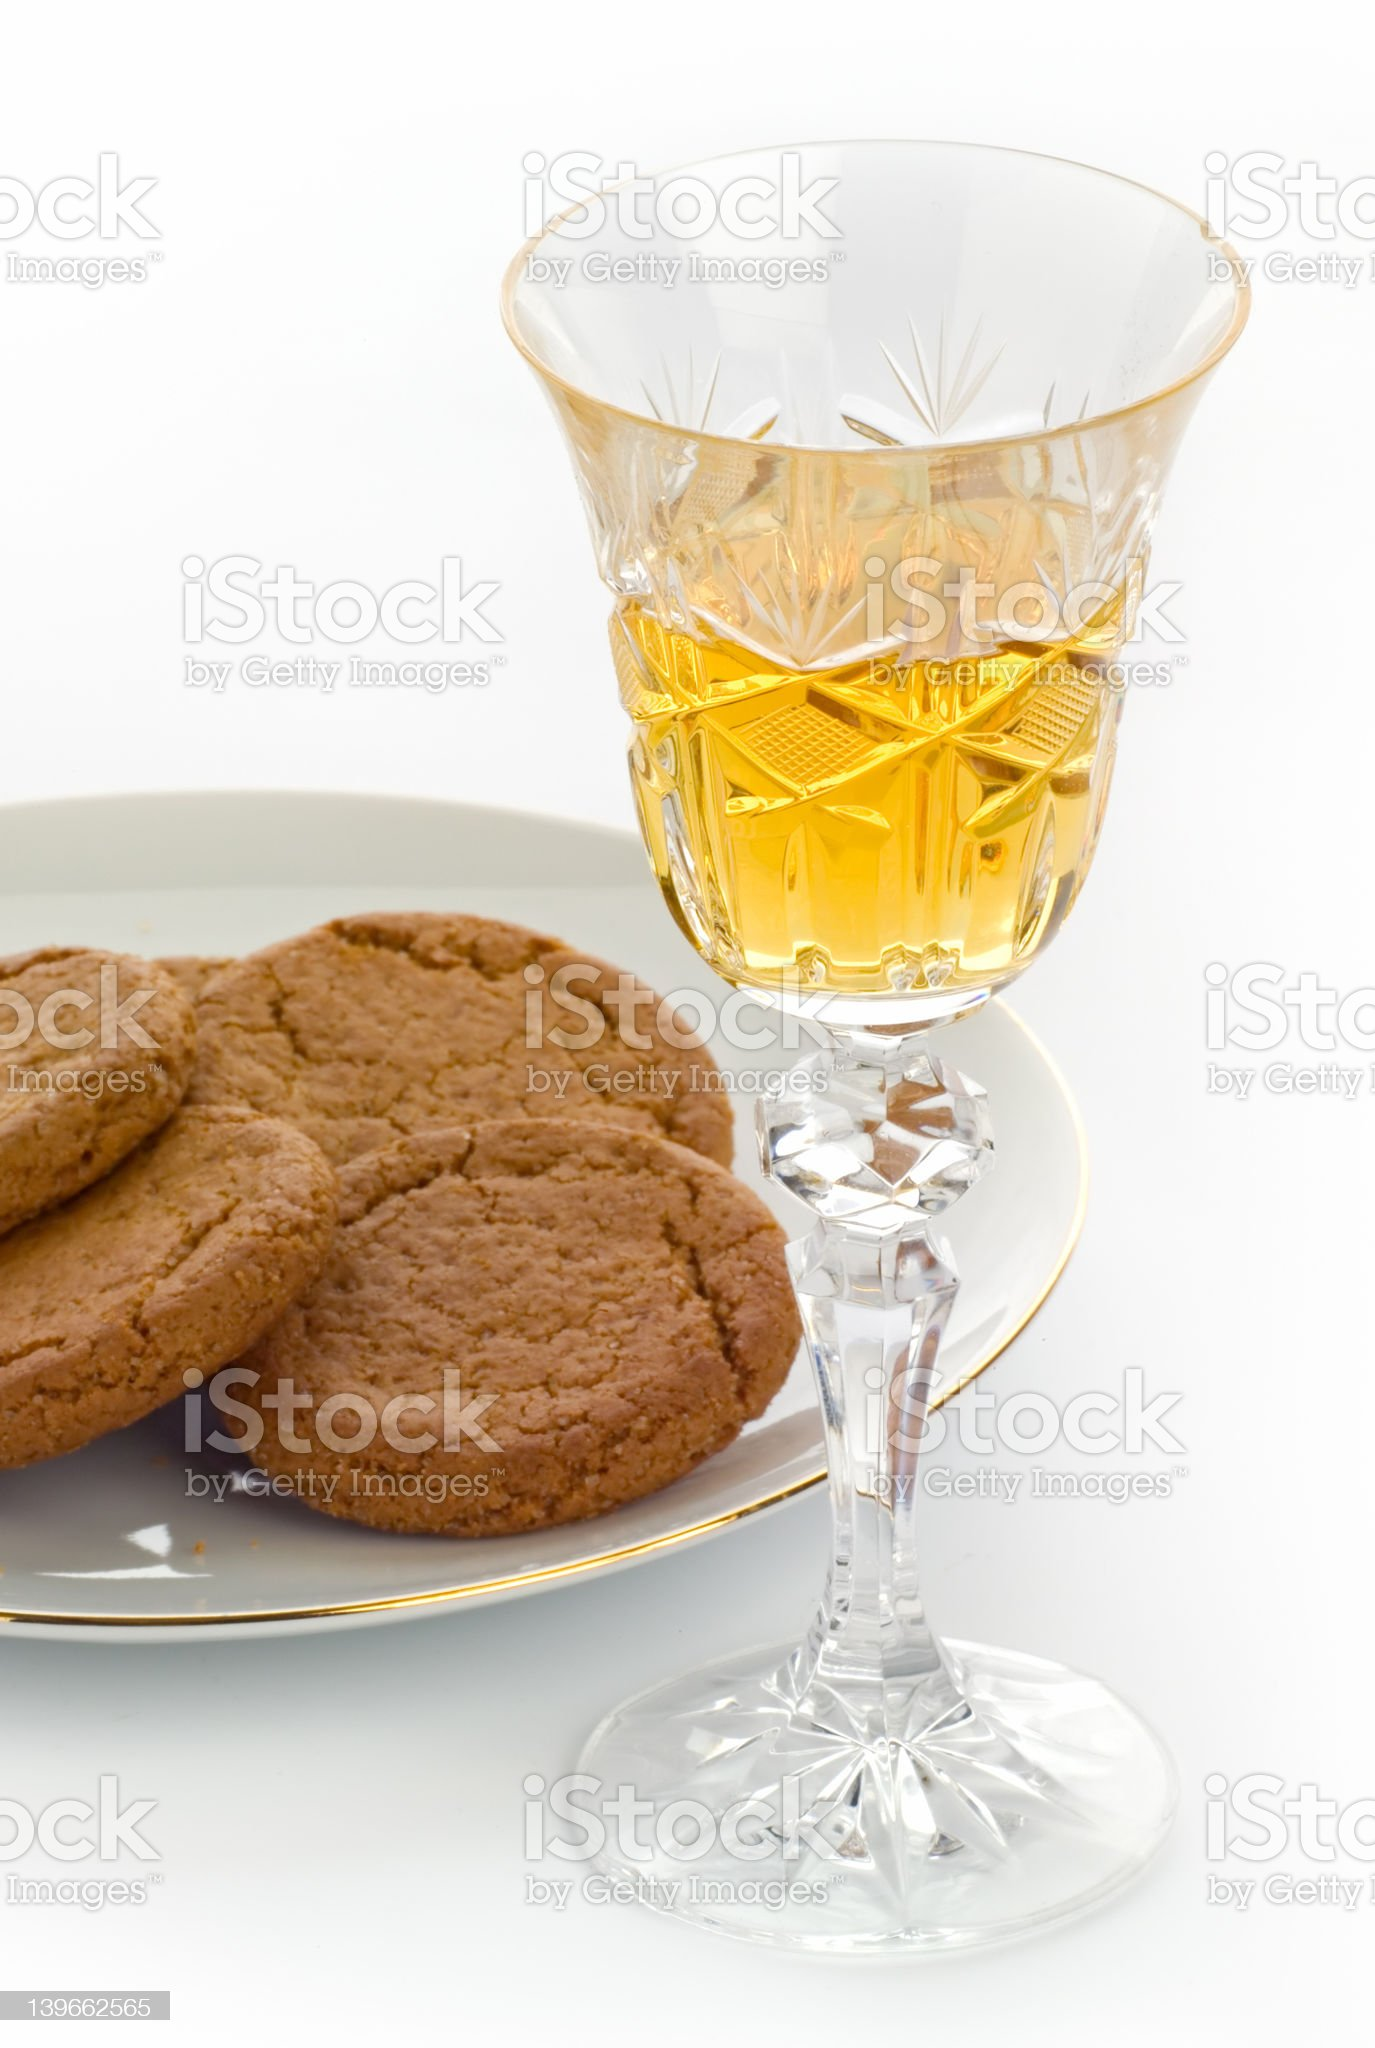 Crystal sherry glass with biscuits royalty-free stock photo